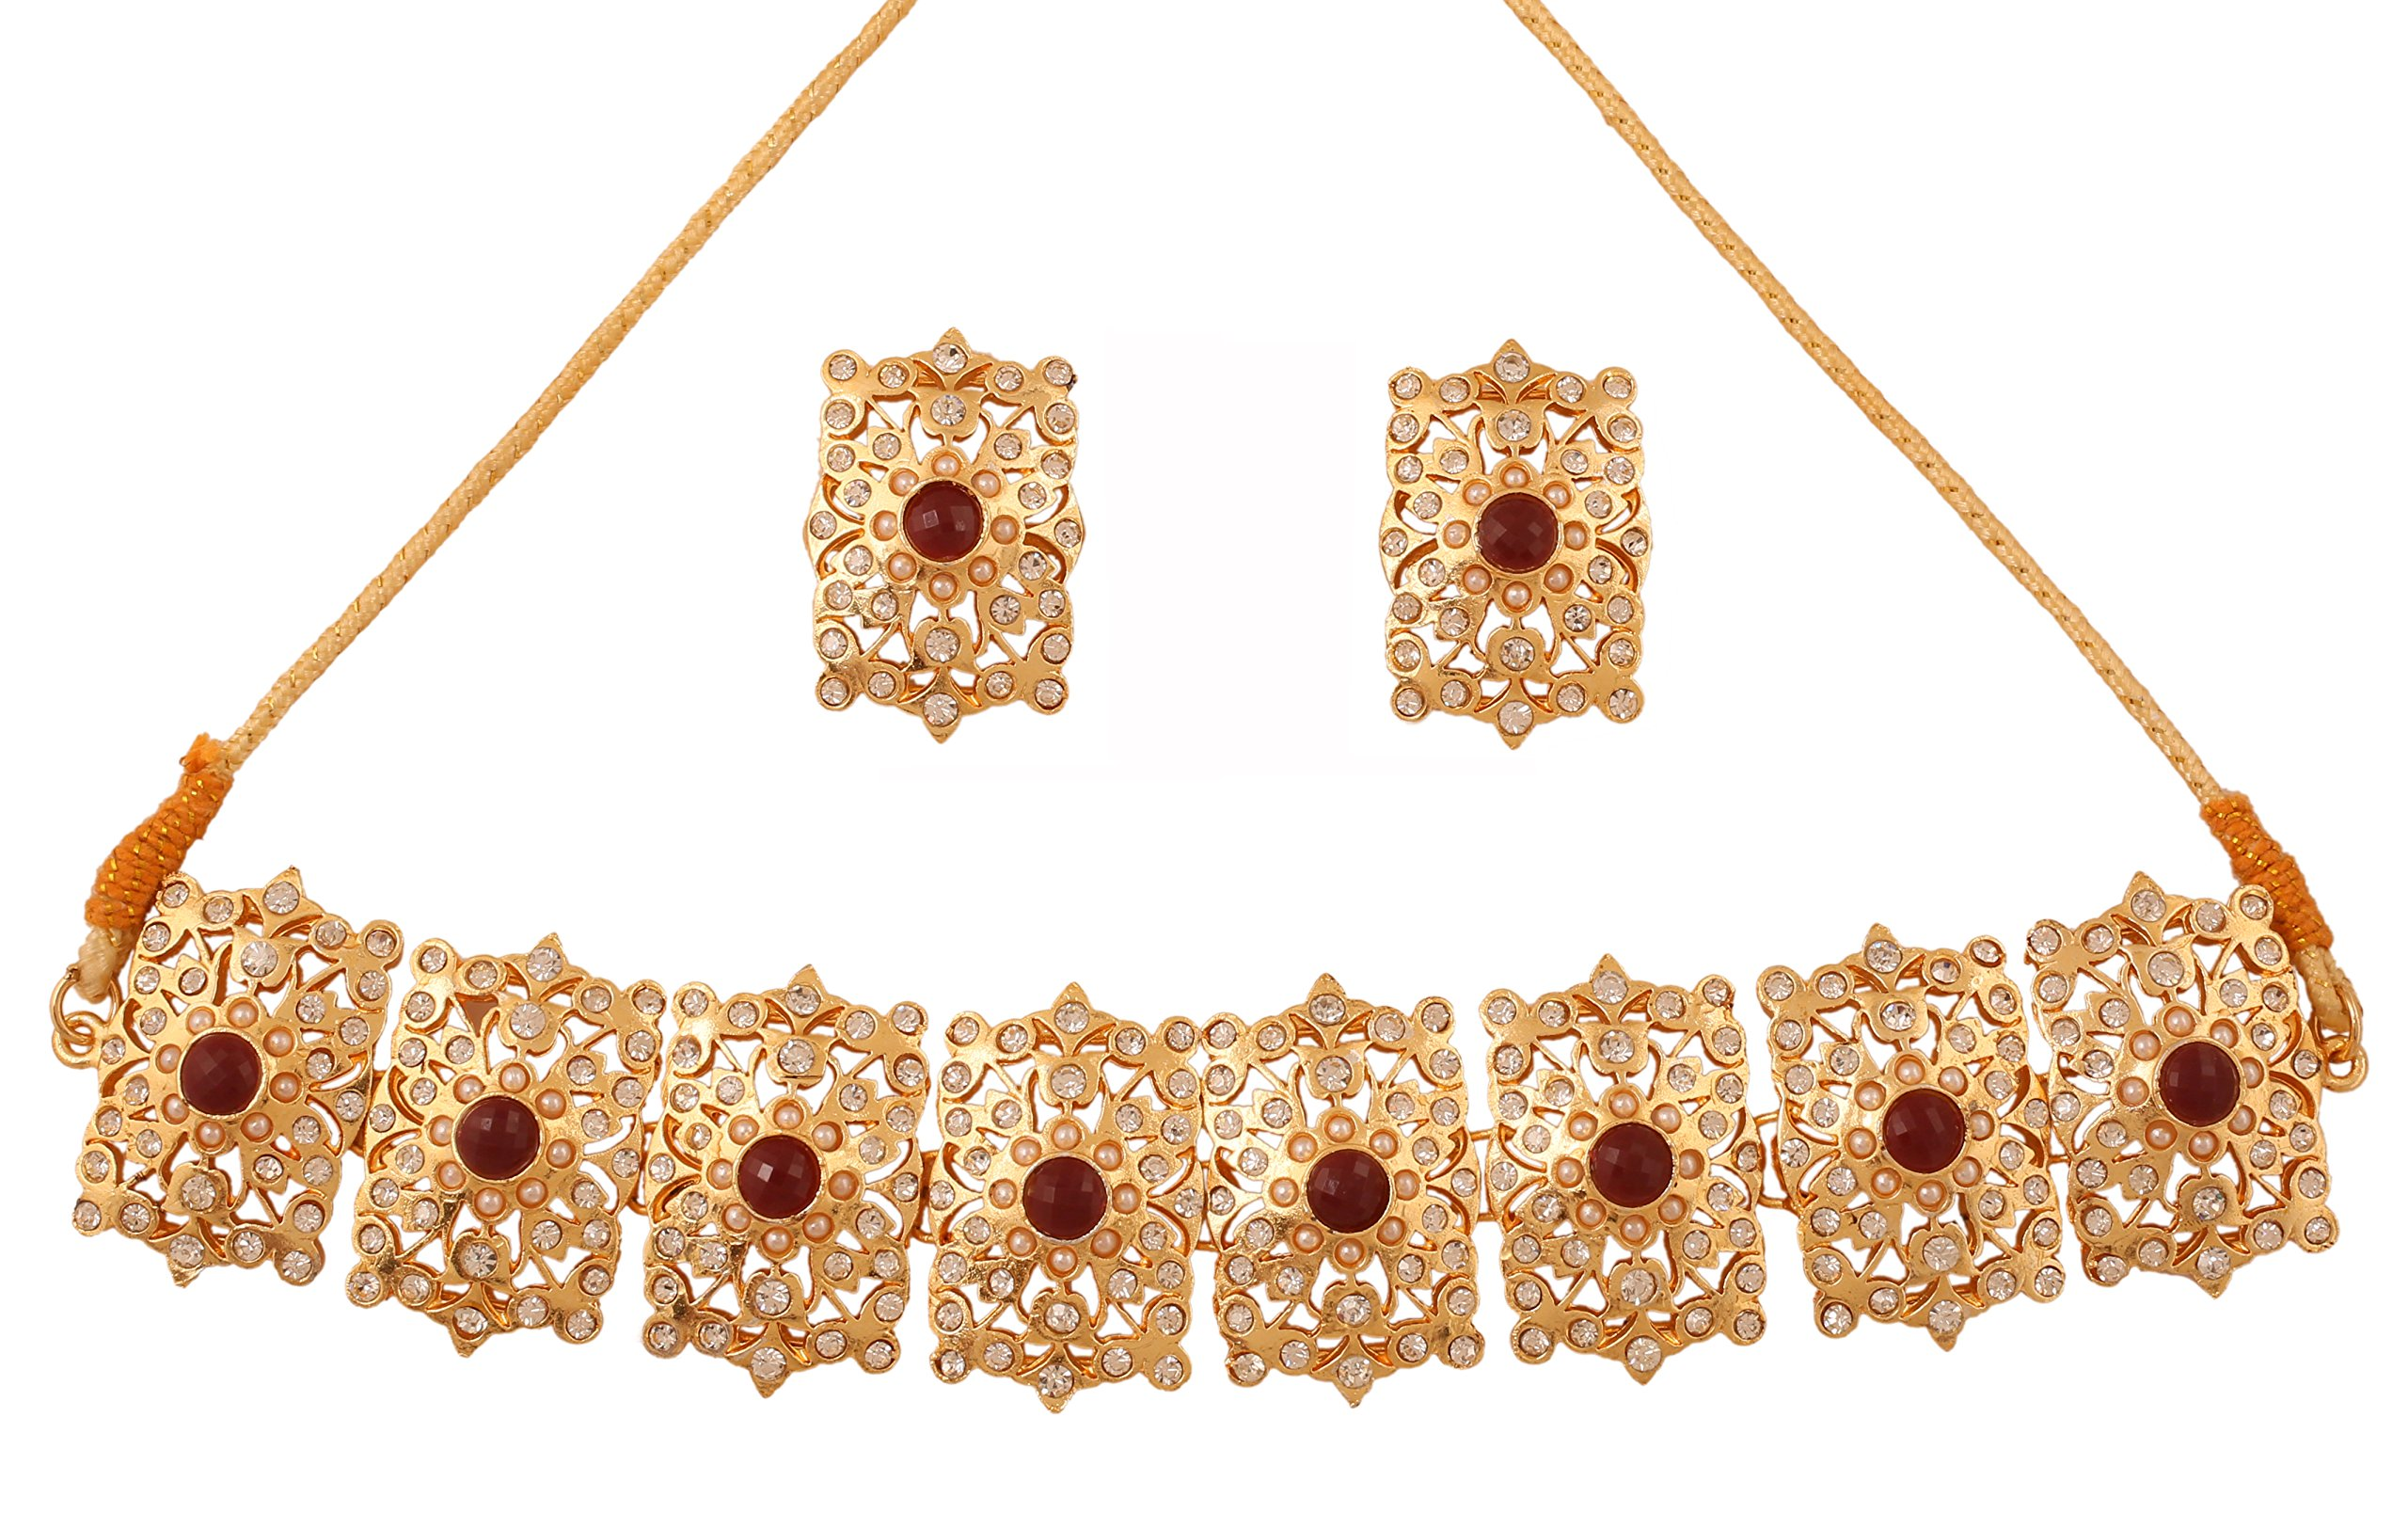 Touchstone Mughal Jali Collection Gold Tone Indian Mughal White Diamante Jewelry Choker Set for Women product image